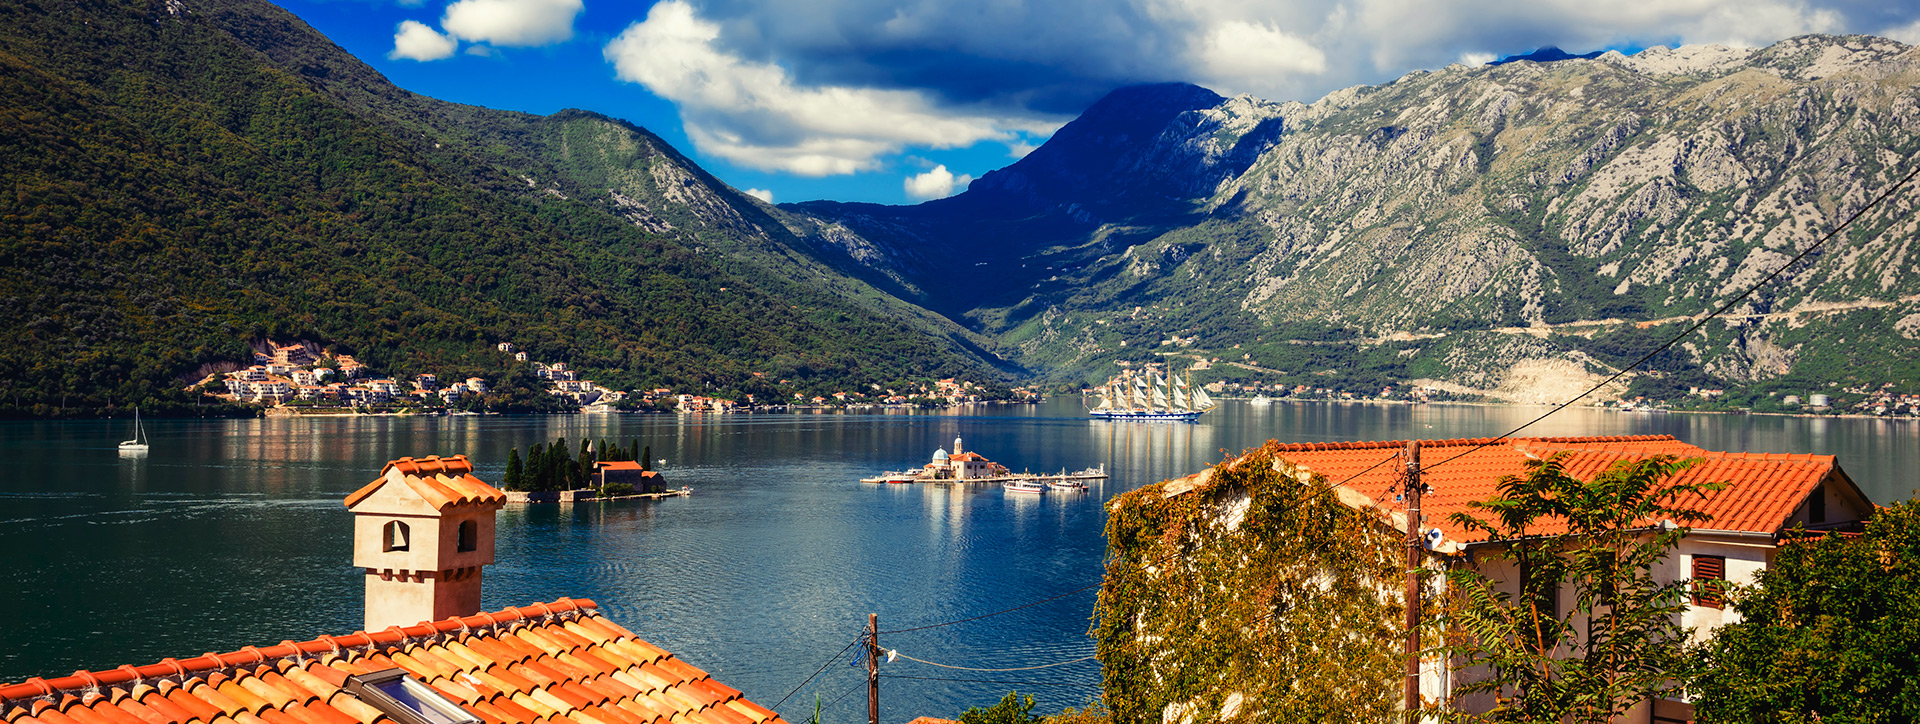 The Islands of St. George and Virgin on the Reef, opposite Perast, Montenegro - Adriatic sailing routes of SimpleSail